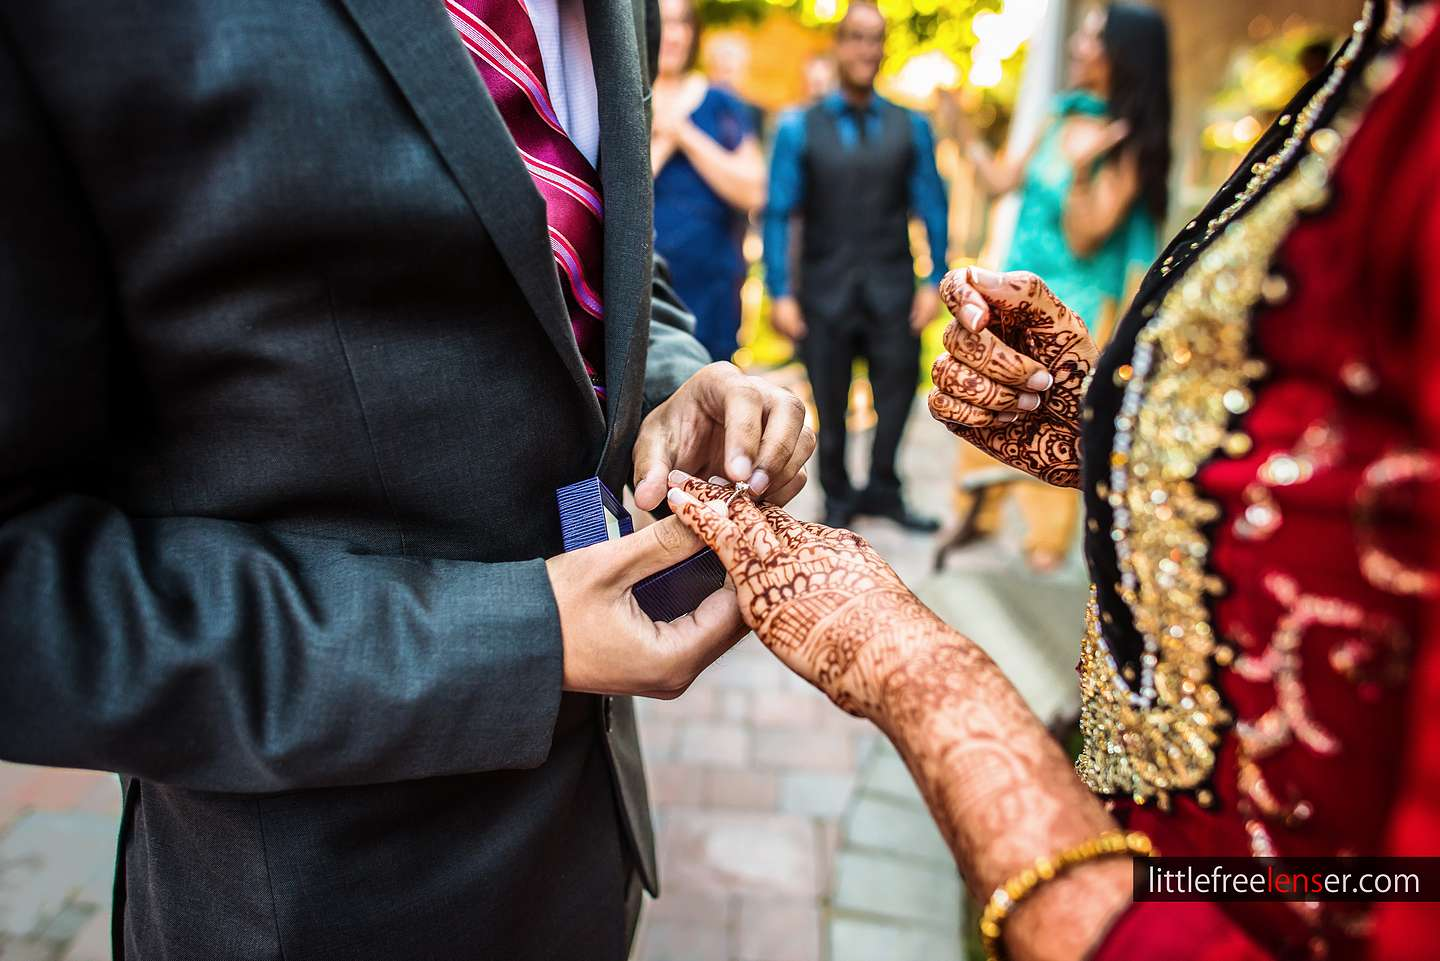 tn_alisha&ayaz_engagementparty_14